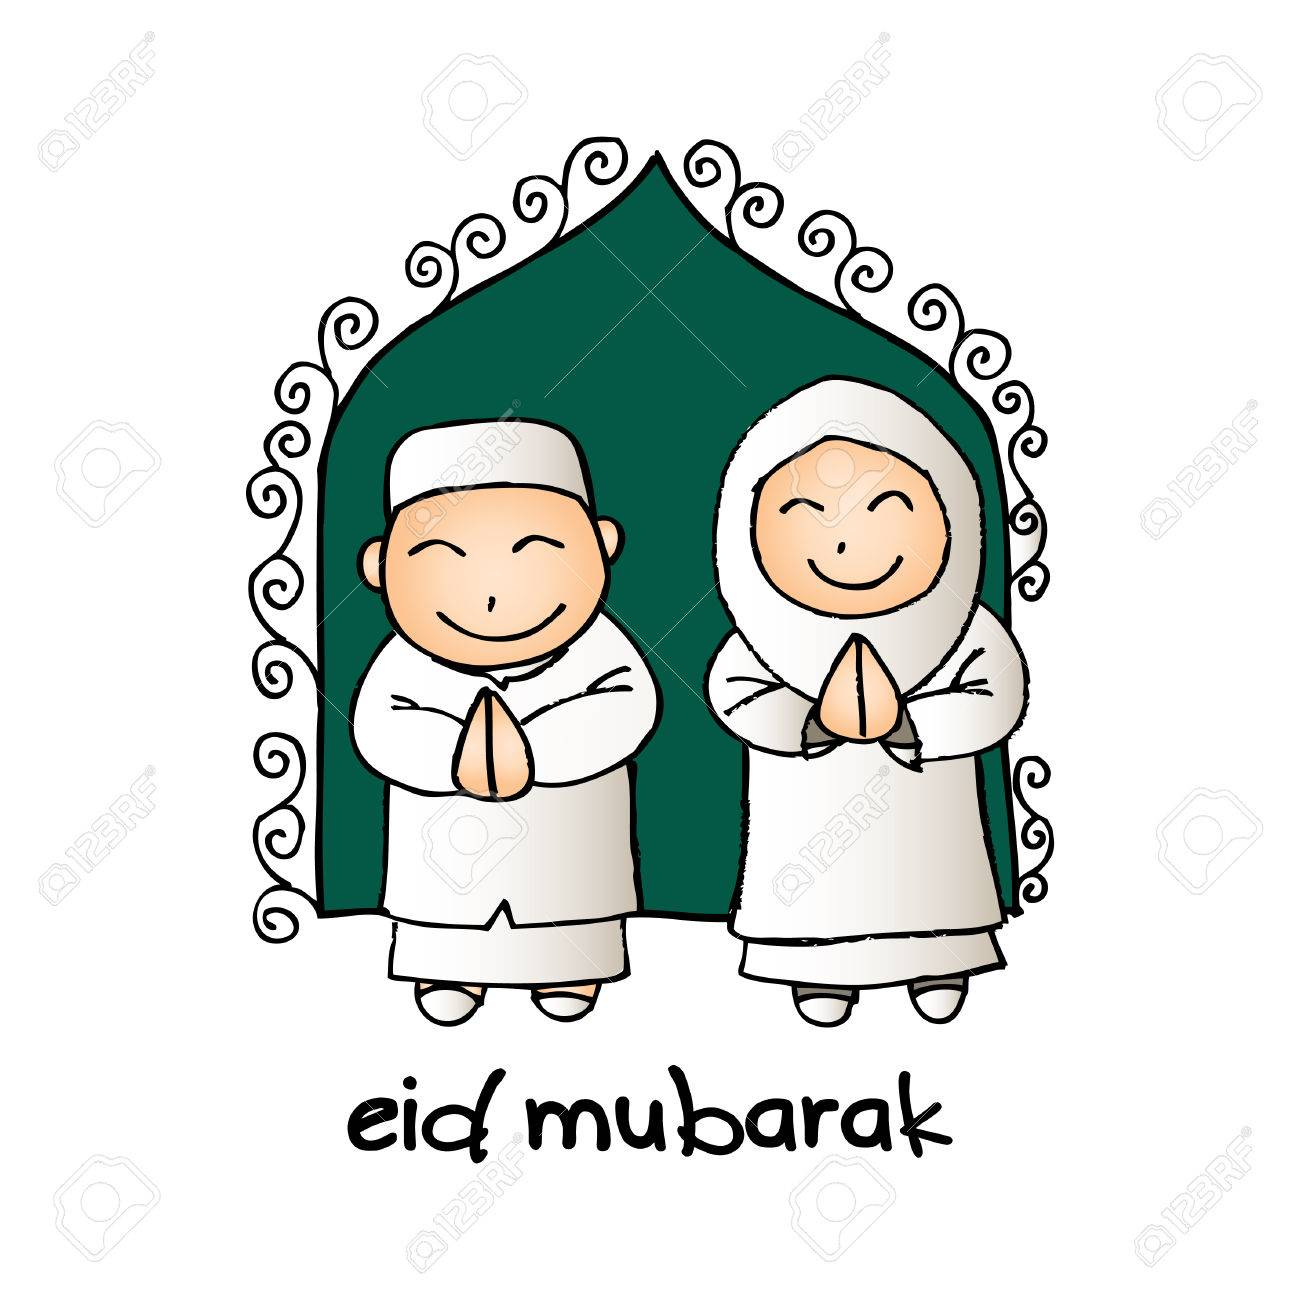 Eid mubarak greeting card with cute cartoon muslim royalty free eid mubarak greeting card with cute cartoon muslim stock vector 77844226 m4hsunfo